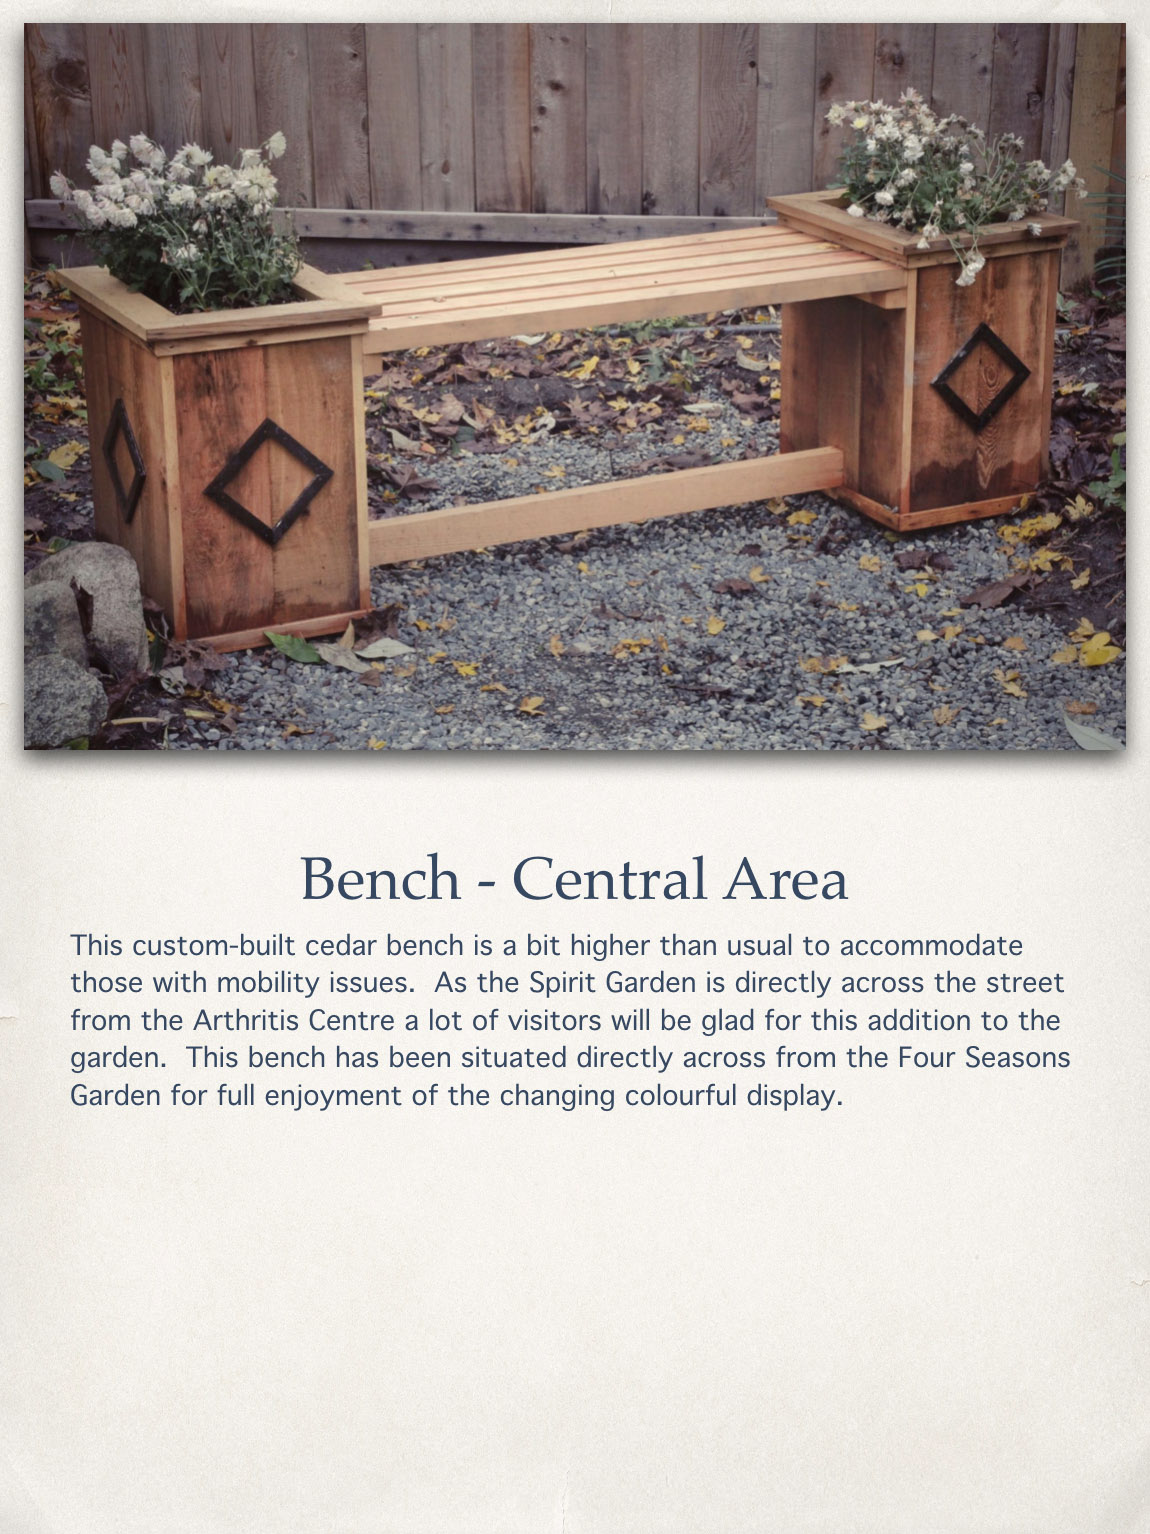 13 - Bench - Central Area.jpg